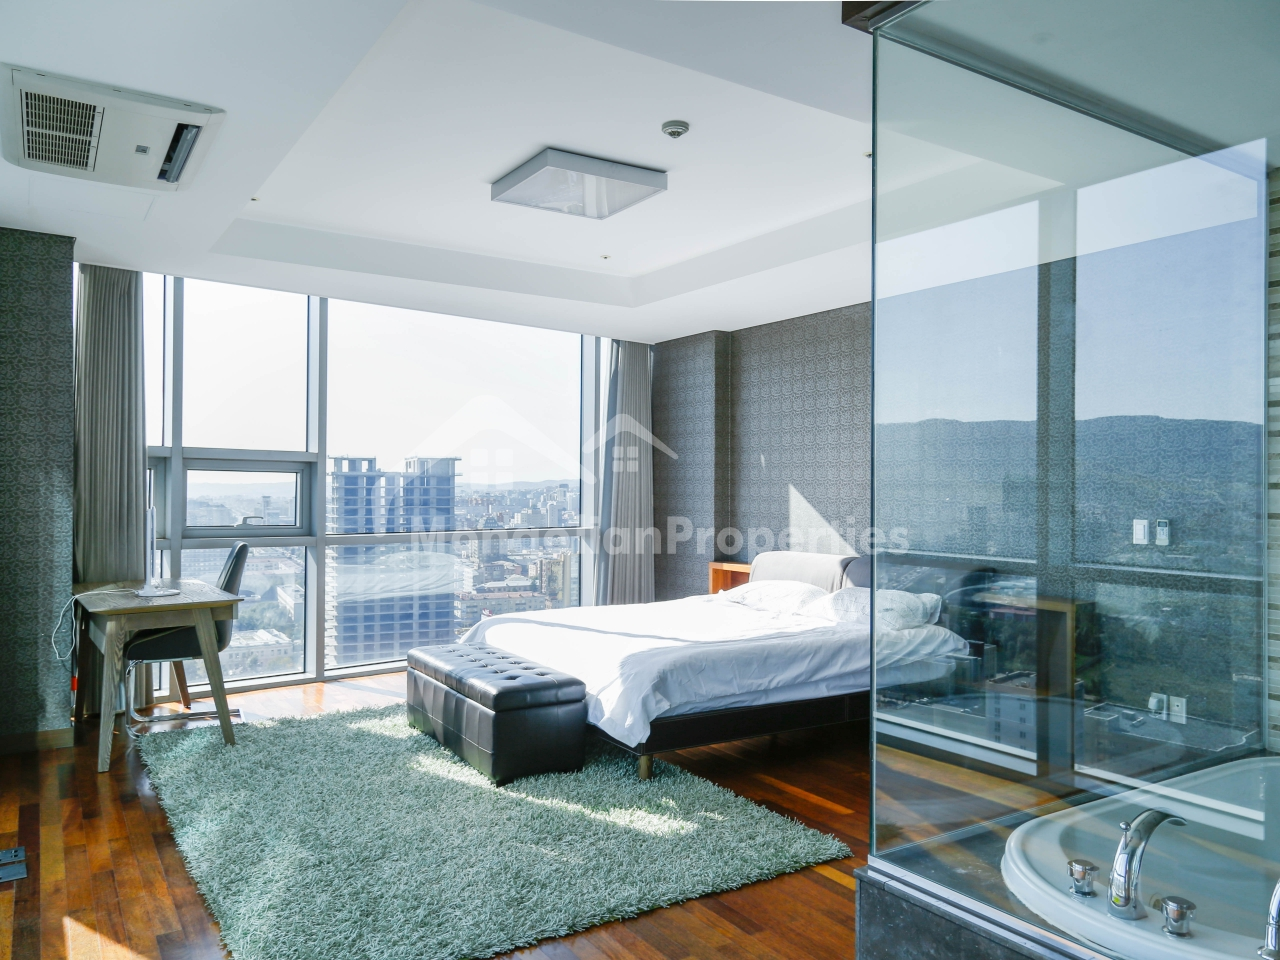 Rent: Luxury 2 bedrooms apartment at Blue Sky Tower   Mongolian ...